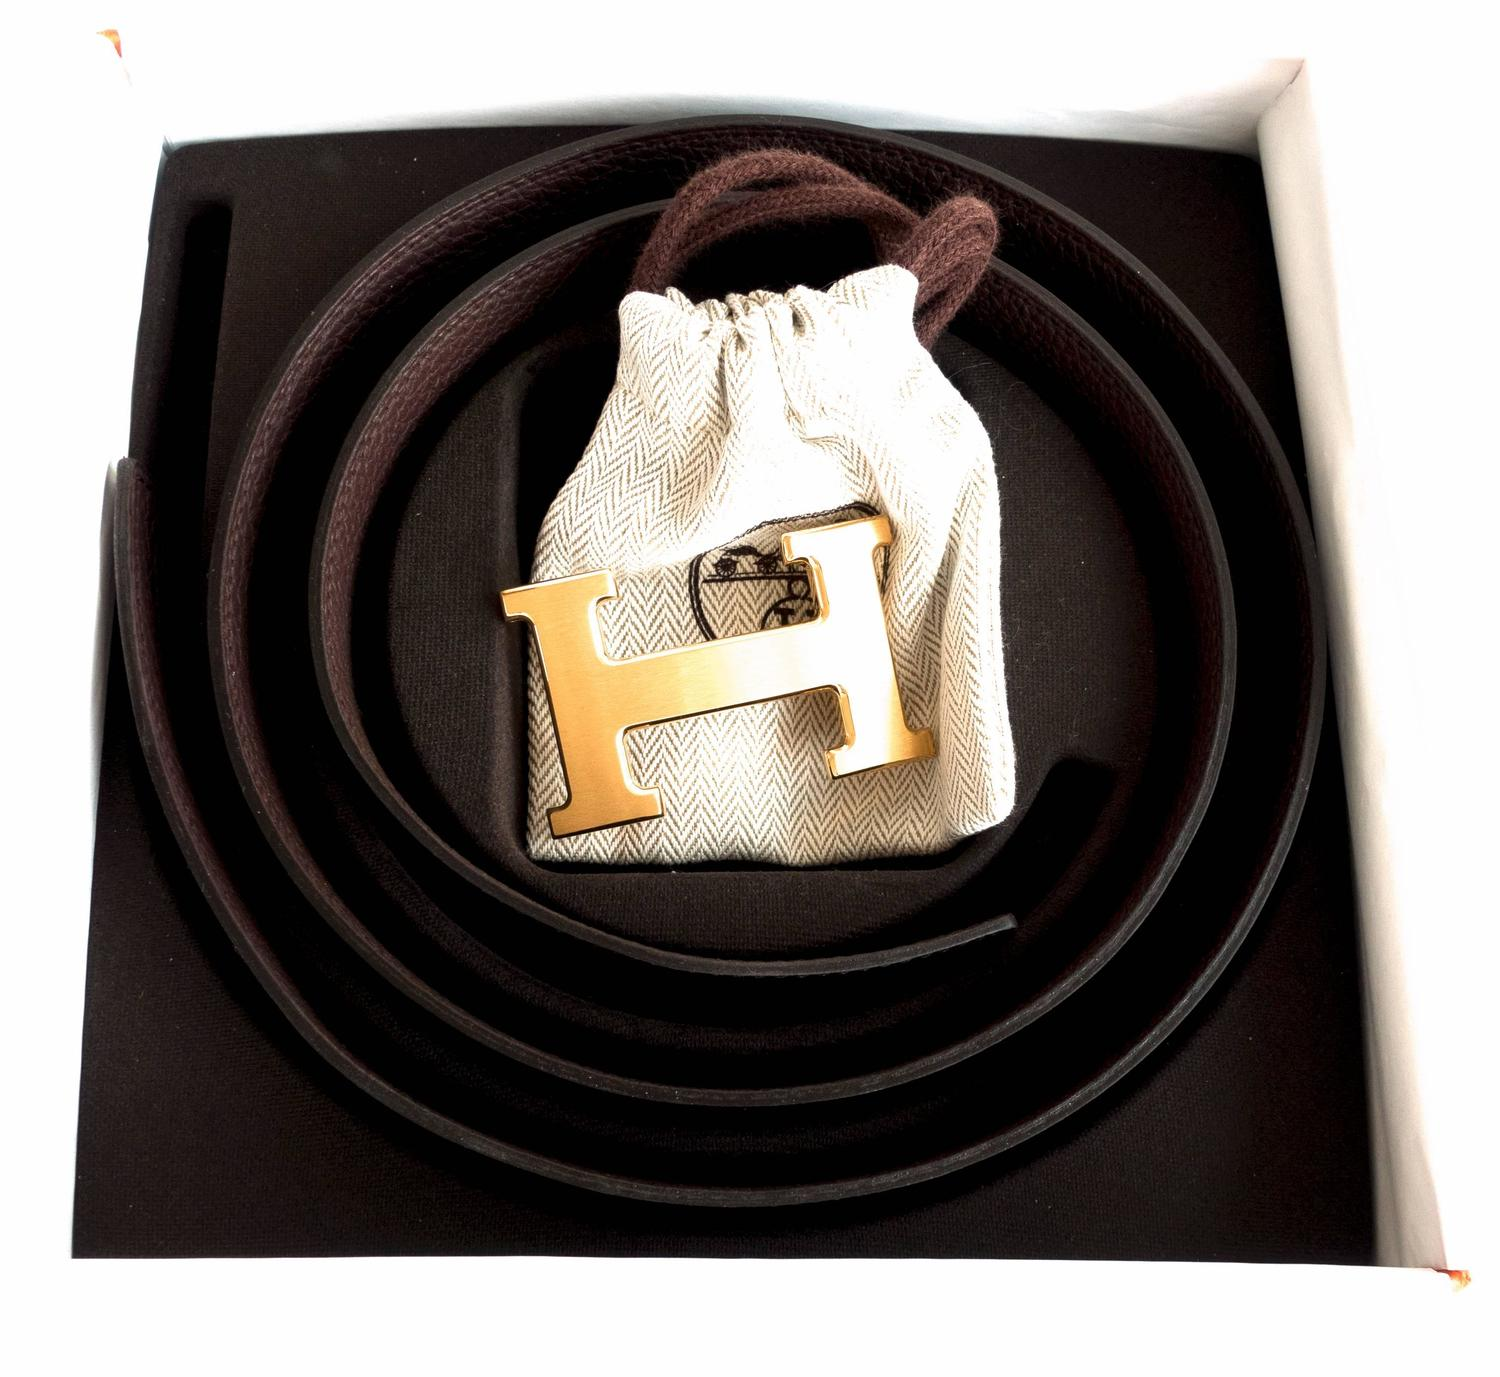 hermes constance bag sizes - hermes belt black brown reversible constance h 90cm